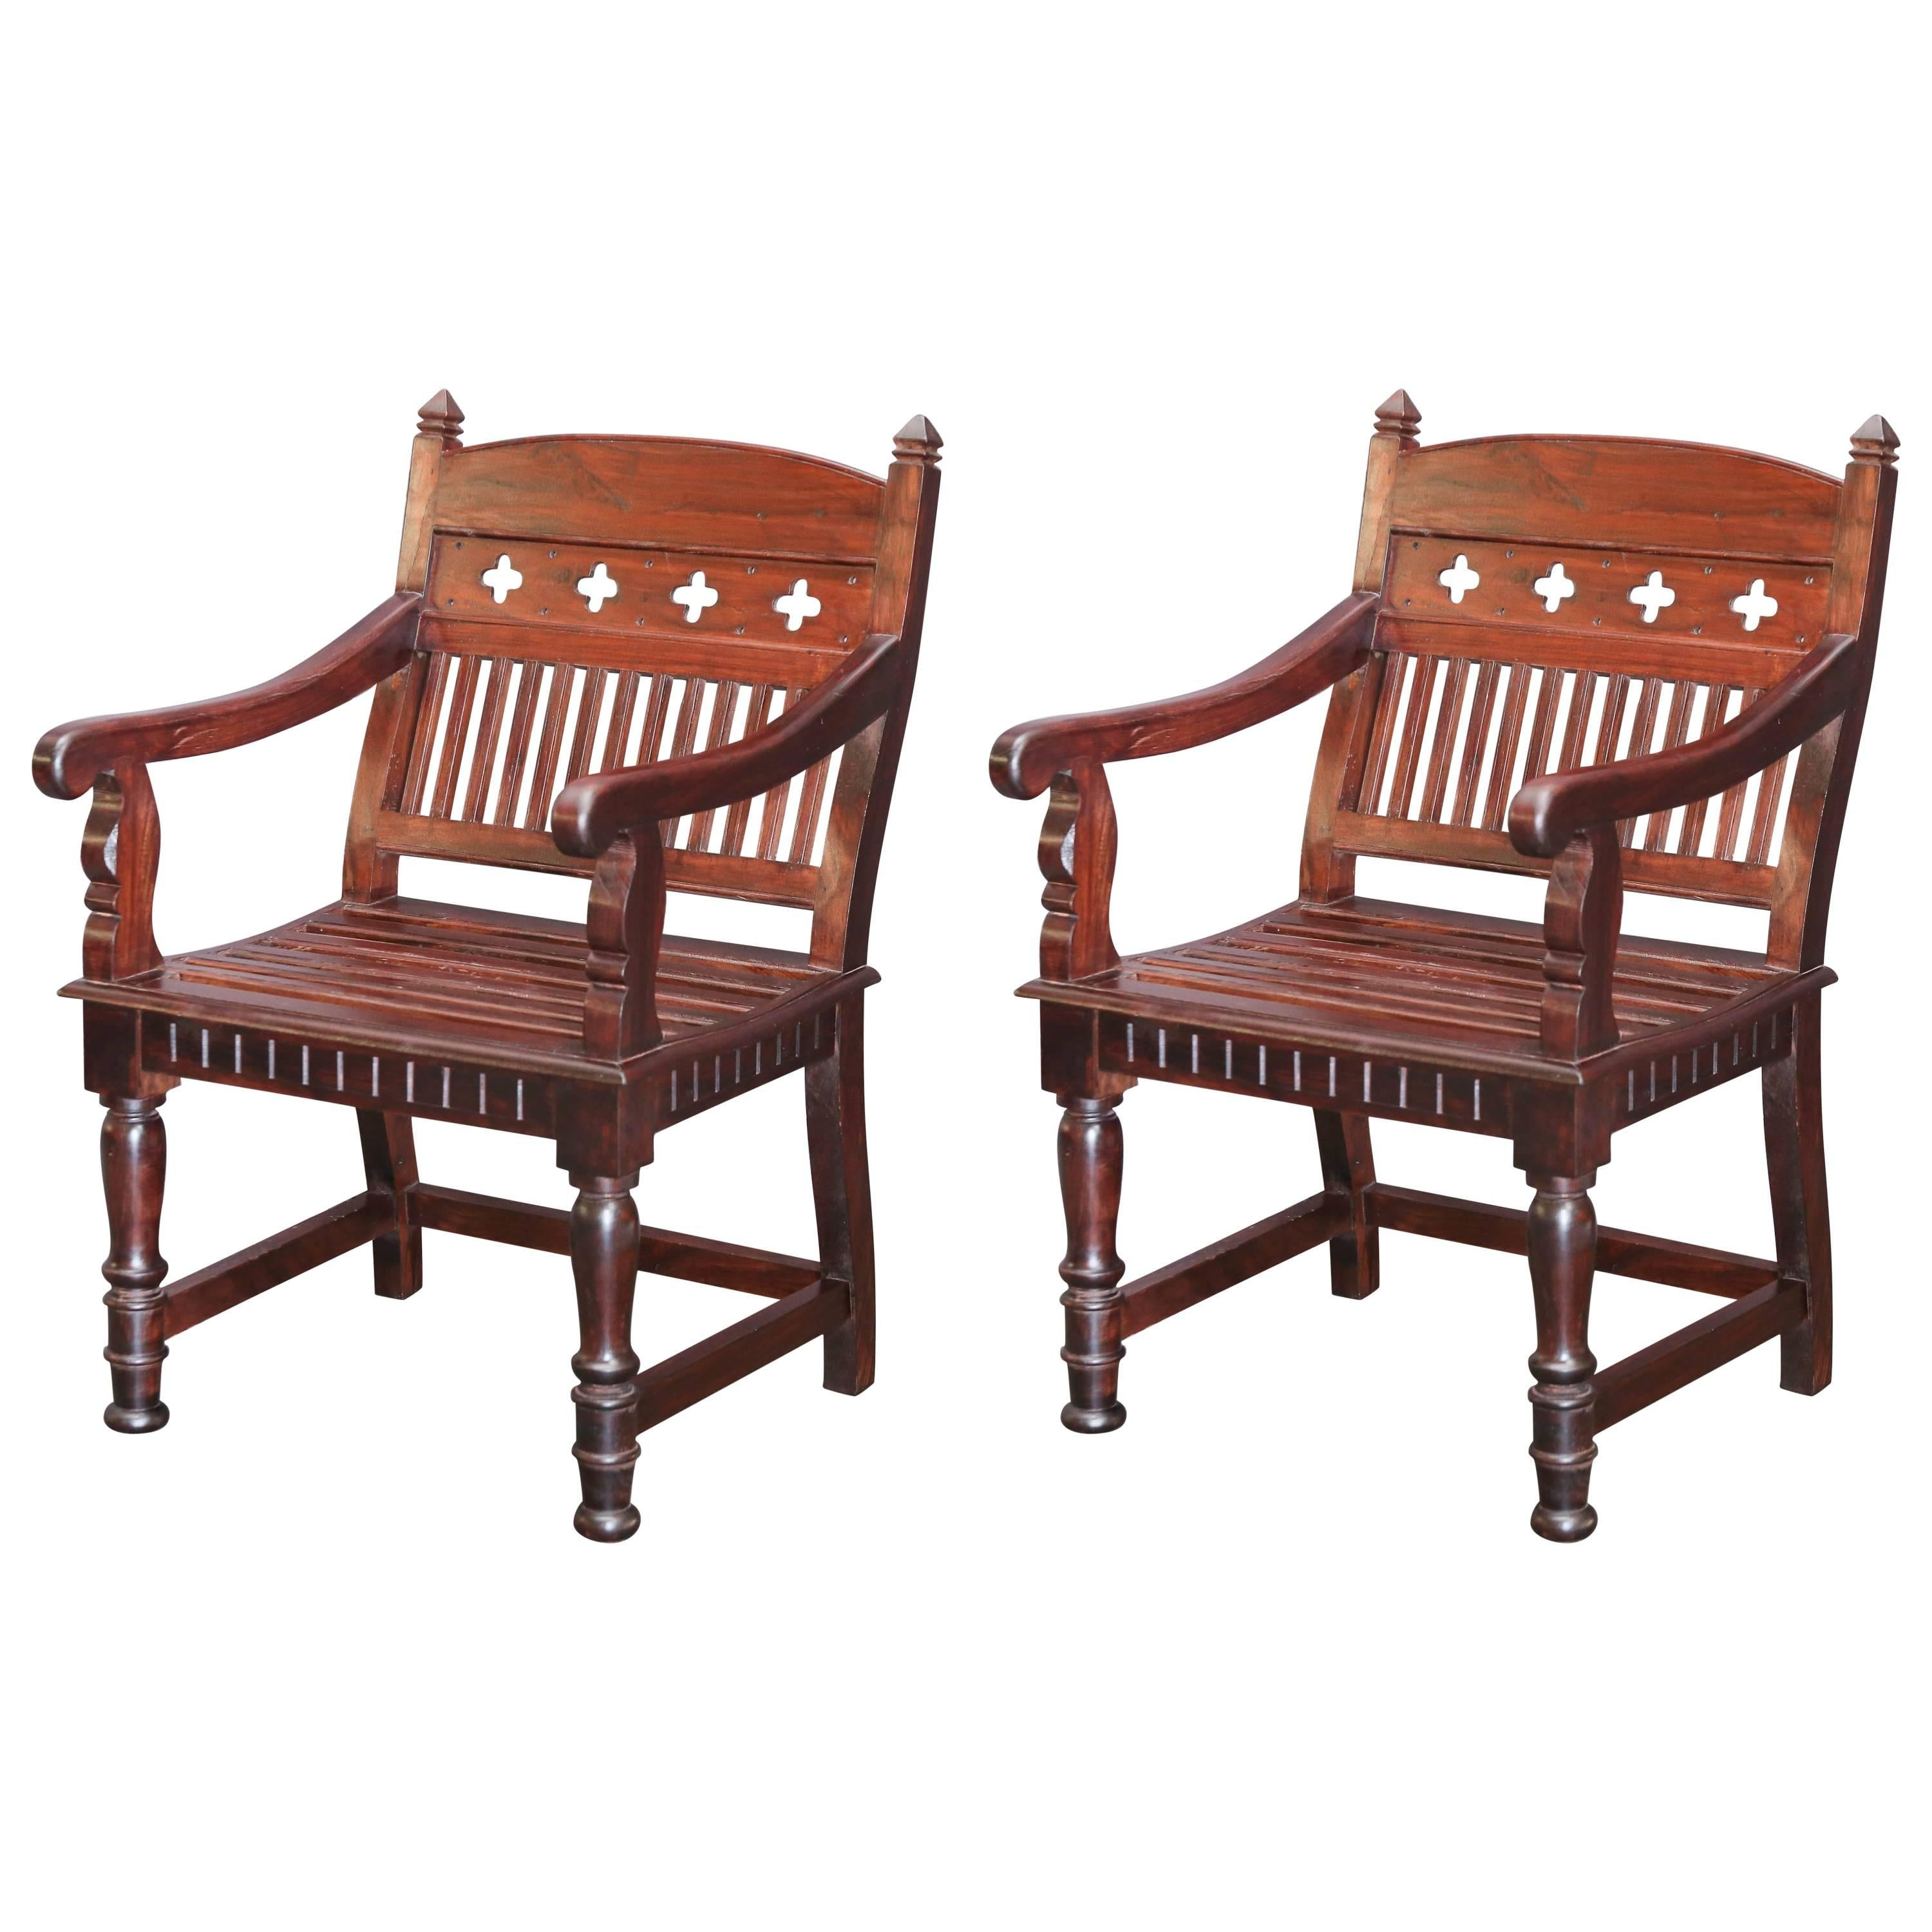 Beau Pair Of 1920s Solid Teak Wood Superbly Crafted Contoured Armchairs For Sale